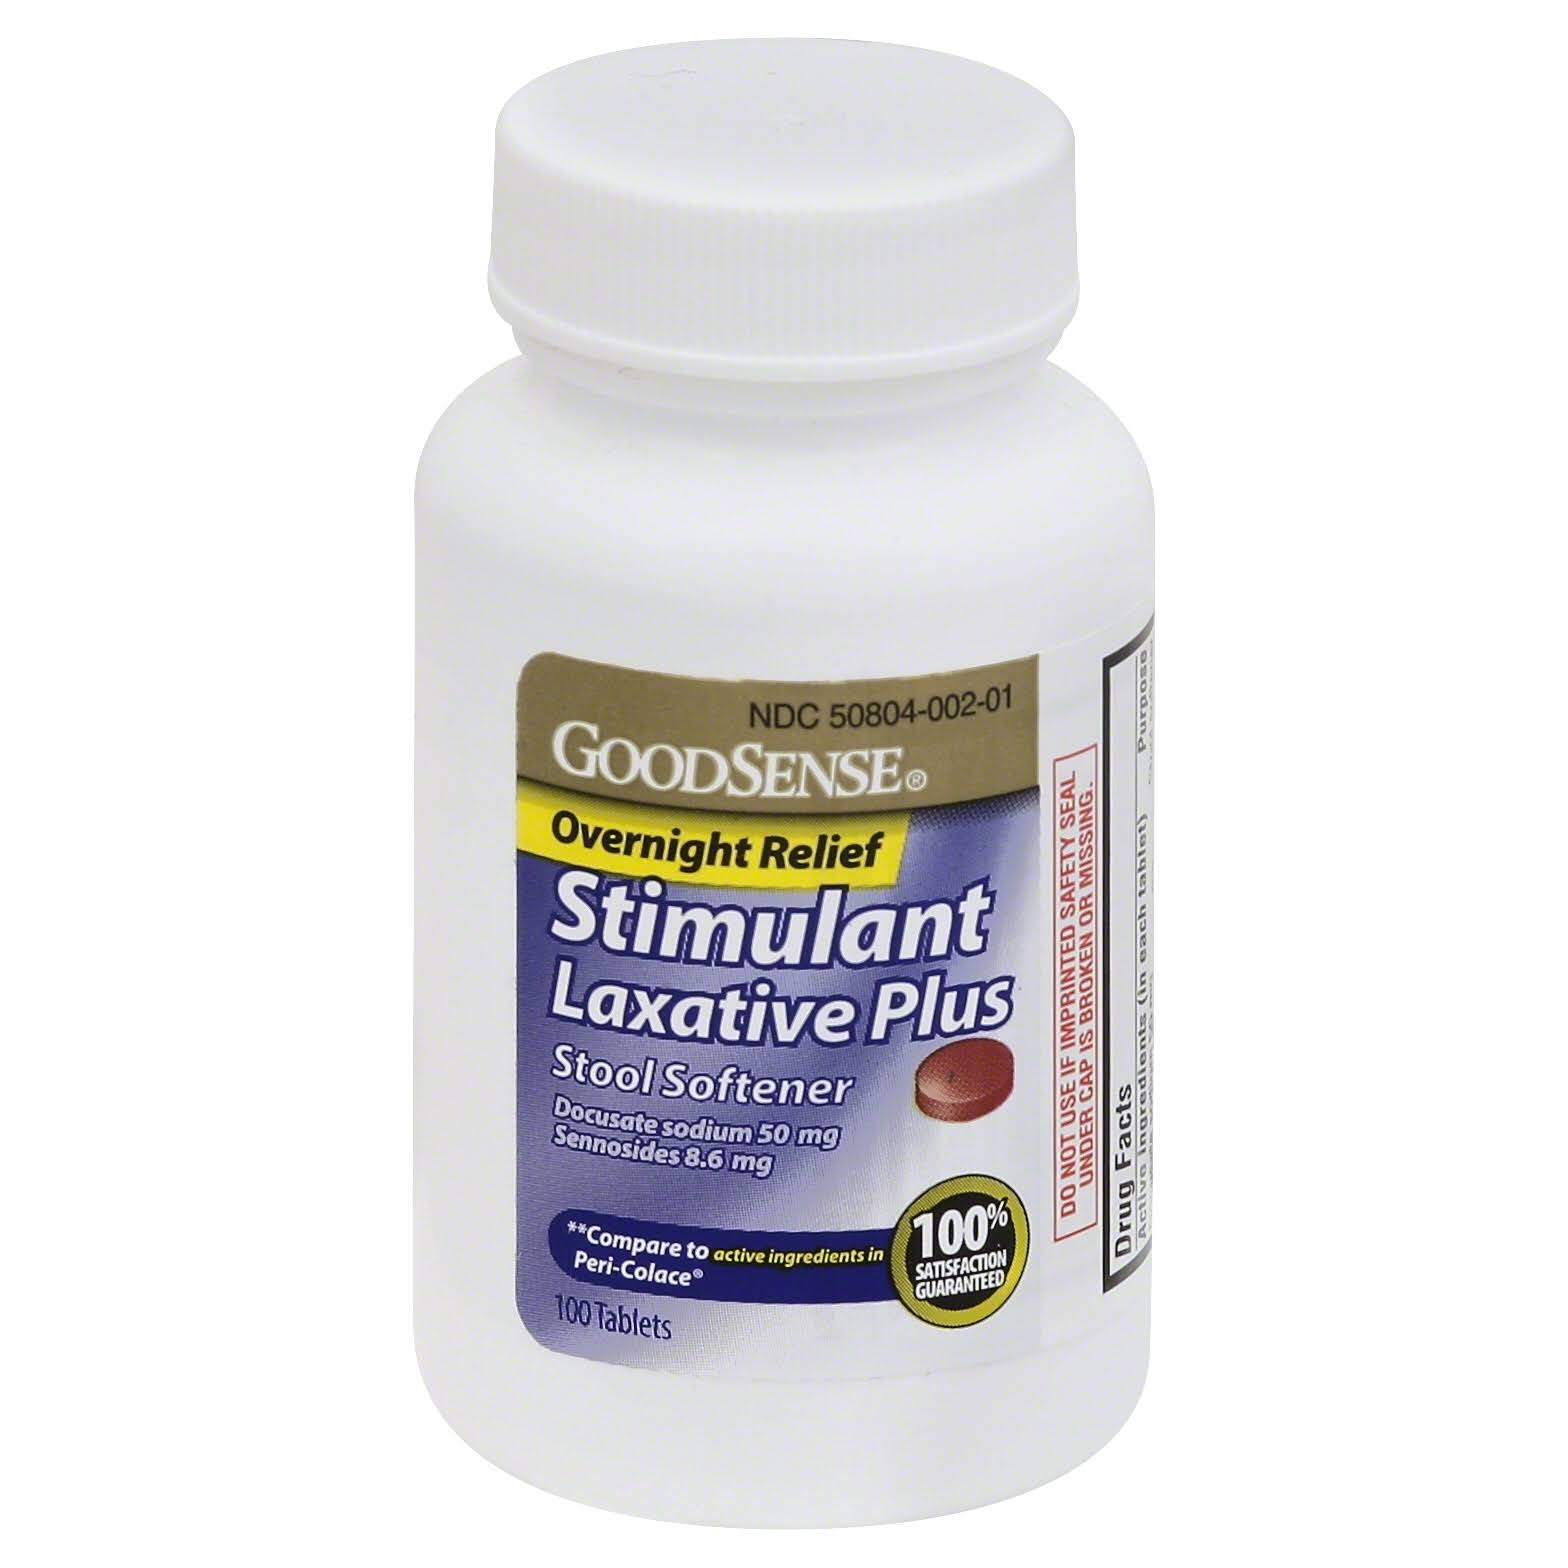 GoodSense Stool Softener, Overnight Relief, Stimulant Laxative Plus, Tablets - 100 tablets